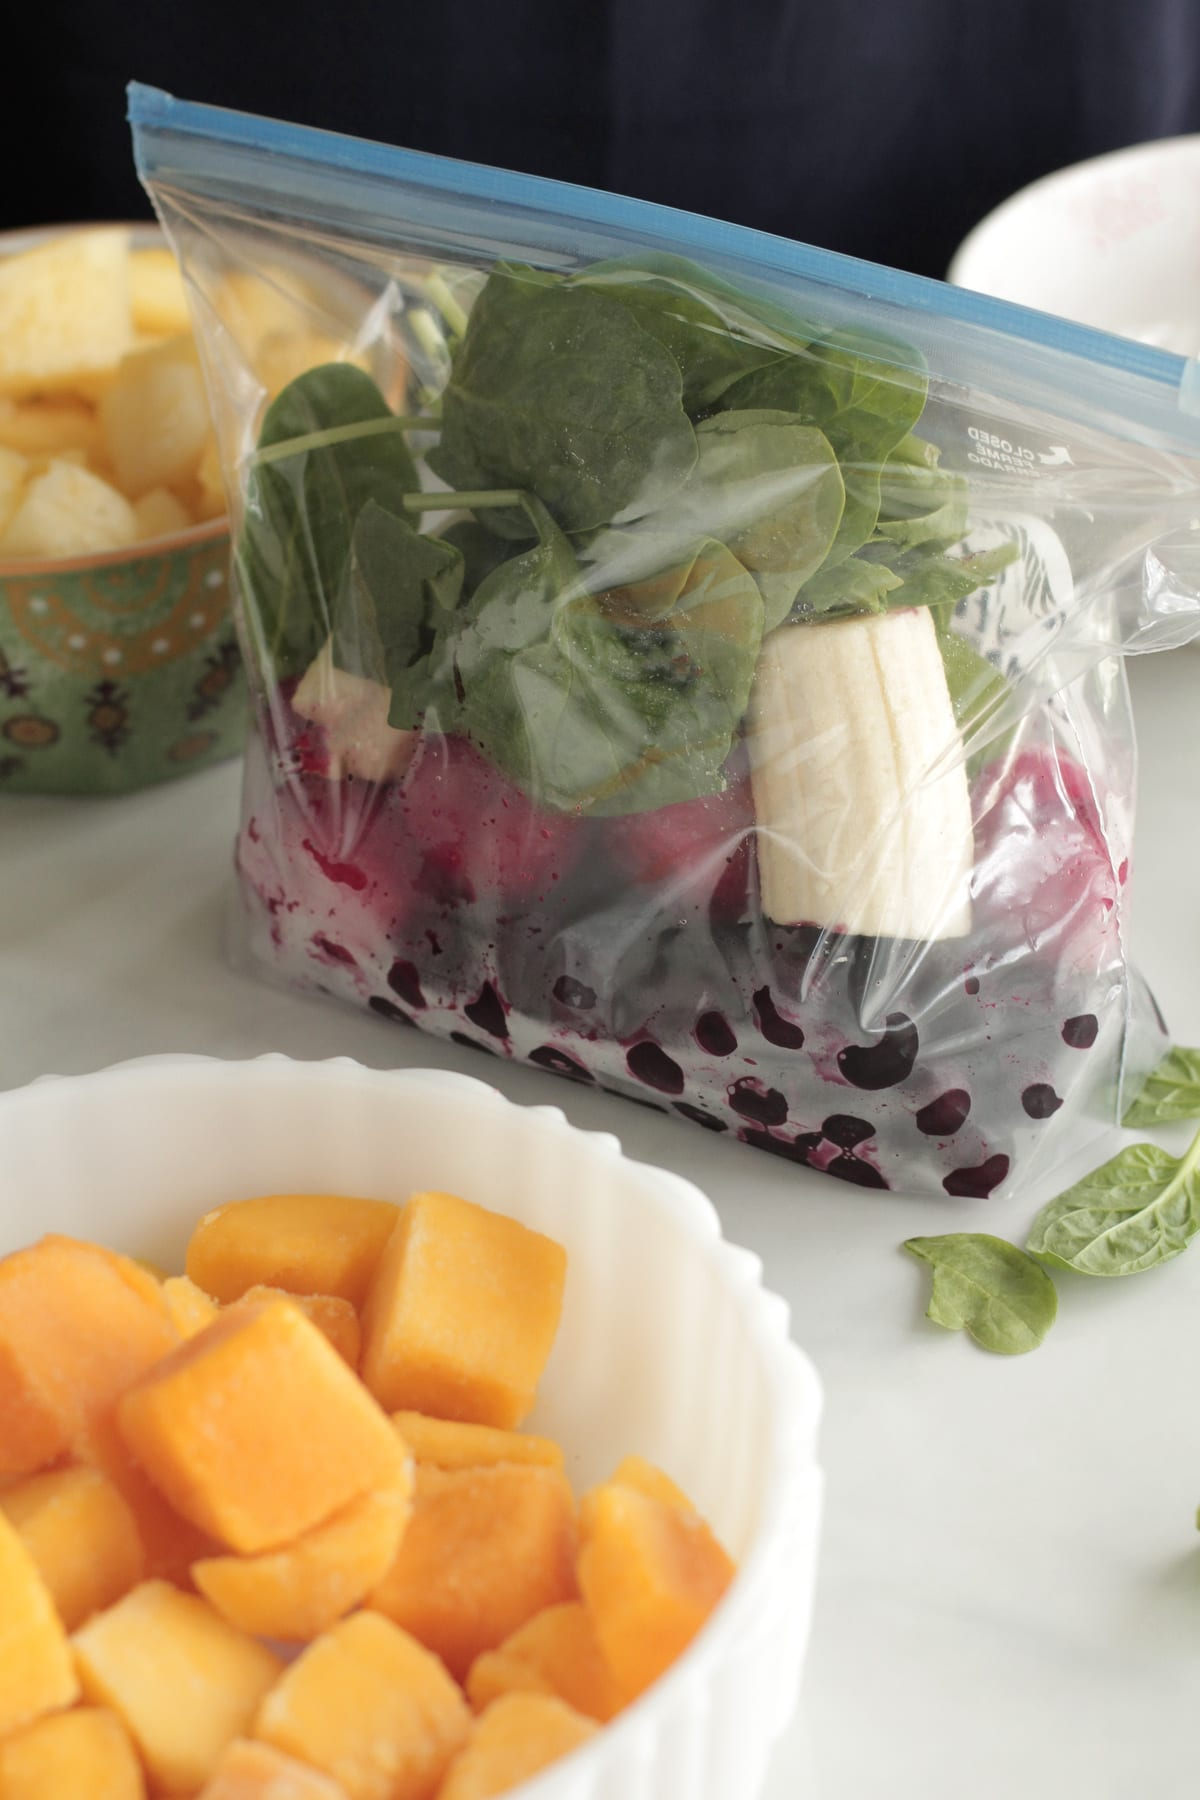 DIY Freezer Smoothie Packs and Smoothie Recipes. Save money and time with  homemade freezer packs